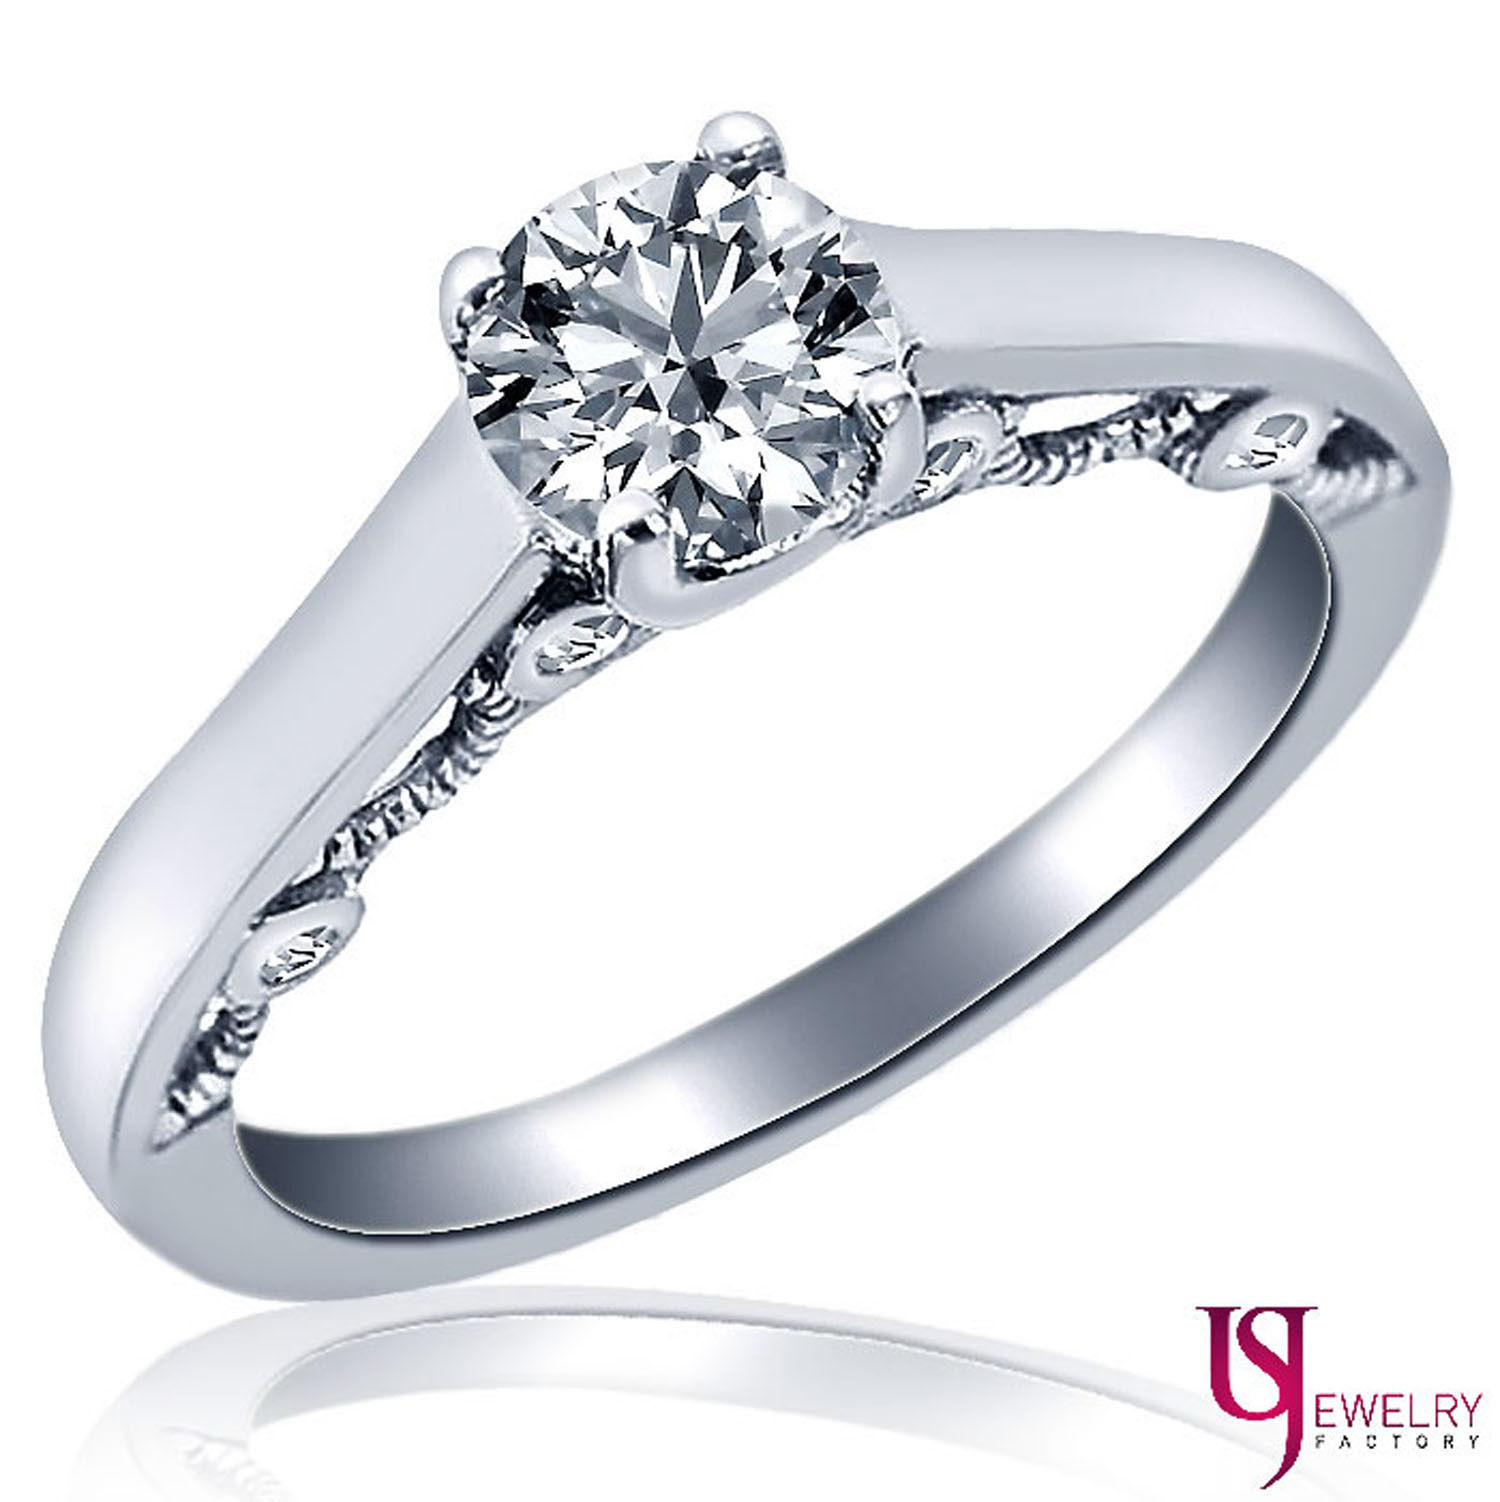 Solitaire Round Diamond Engagement Filigree Design Ring 14k White Gold 0.67ct - $1,444.41